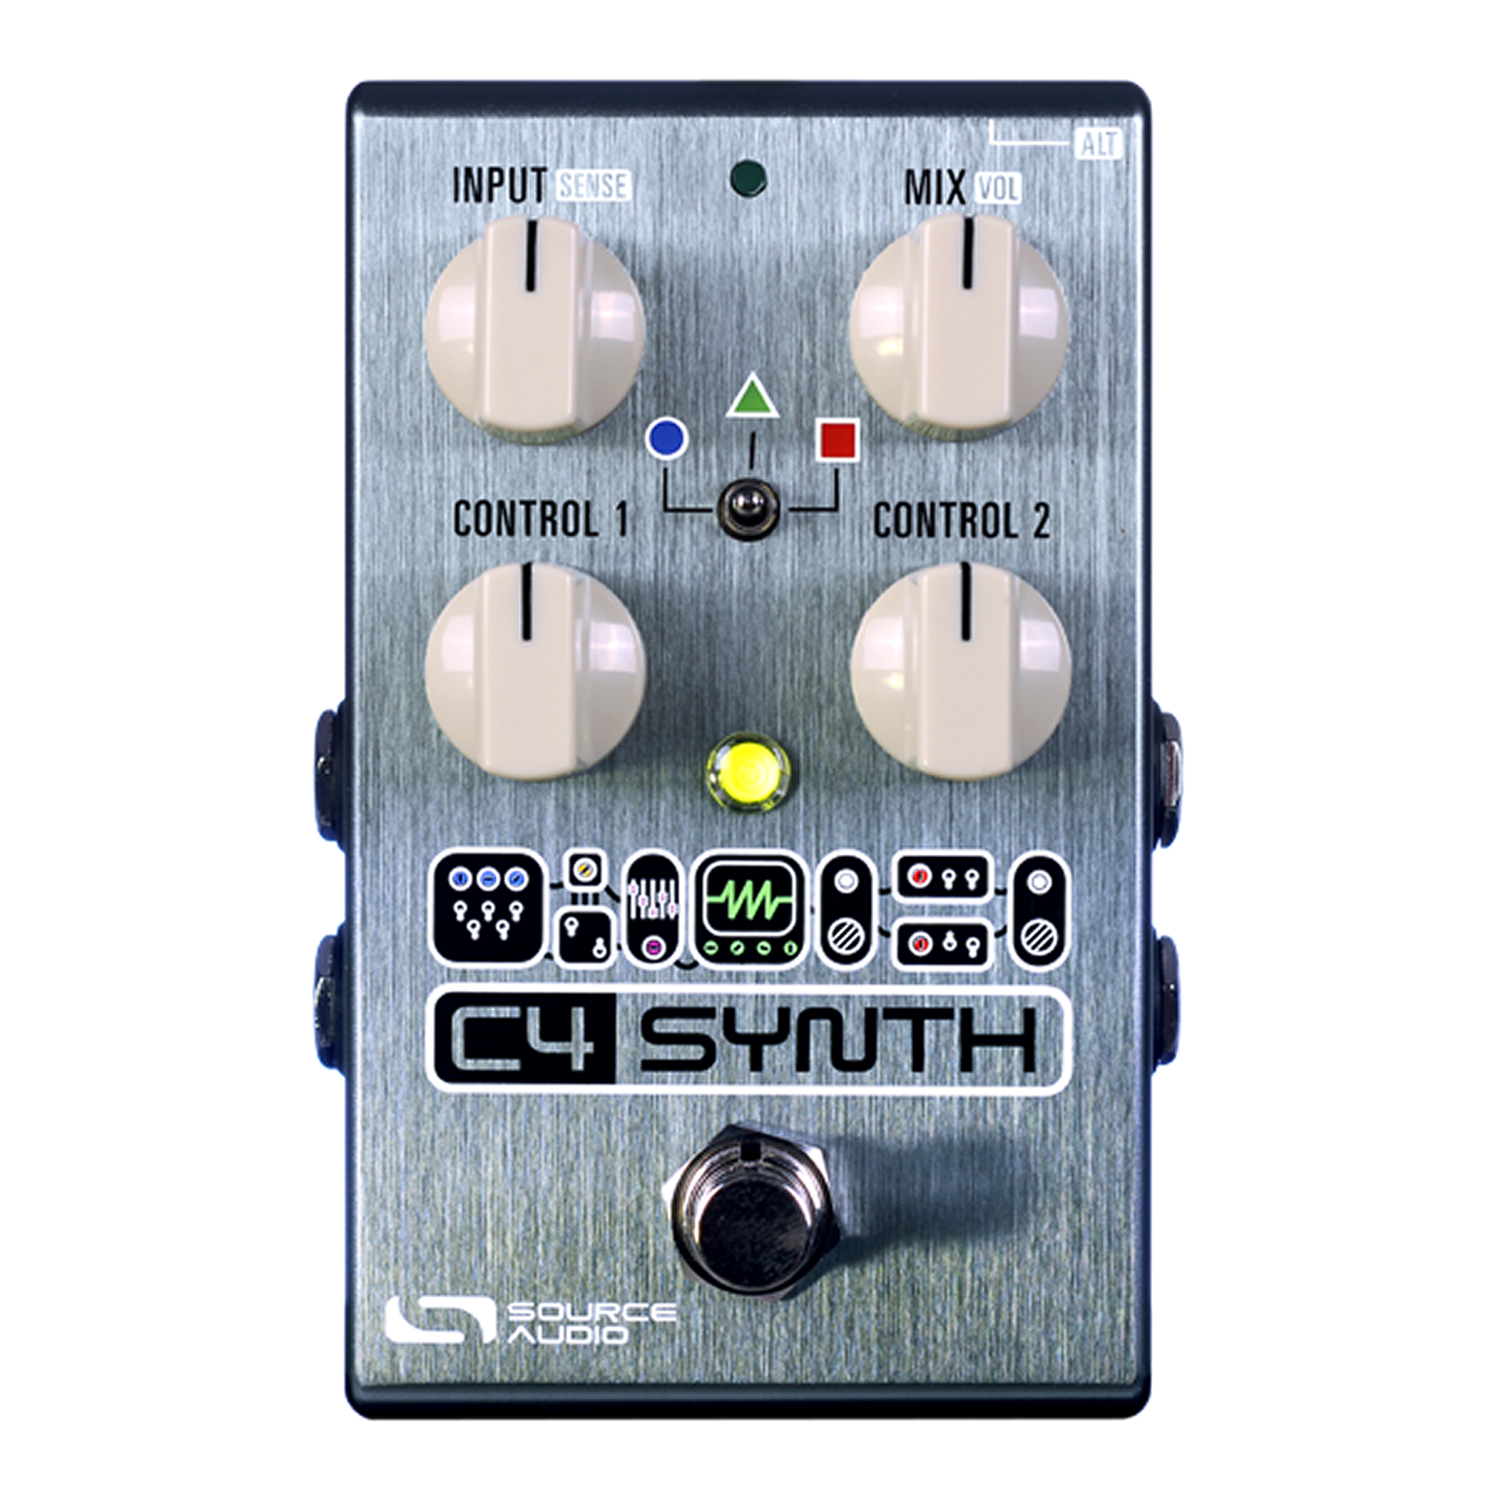 Source Audio SA249 C4 Synth Pedal